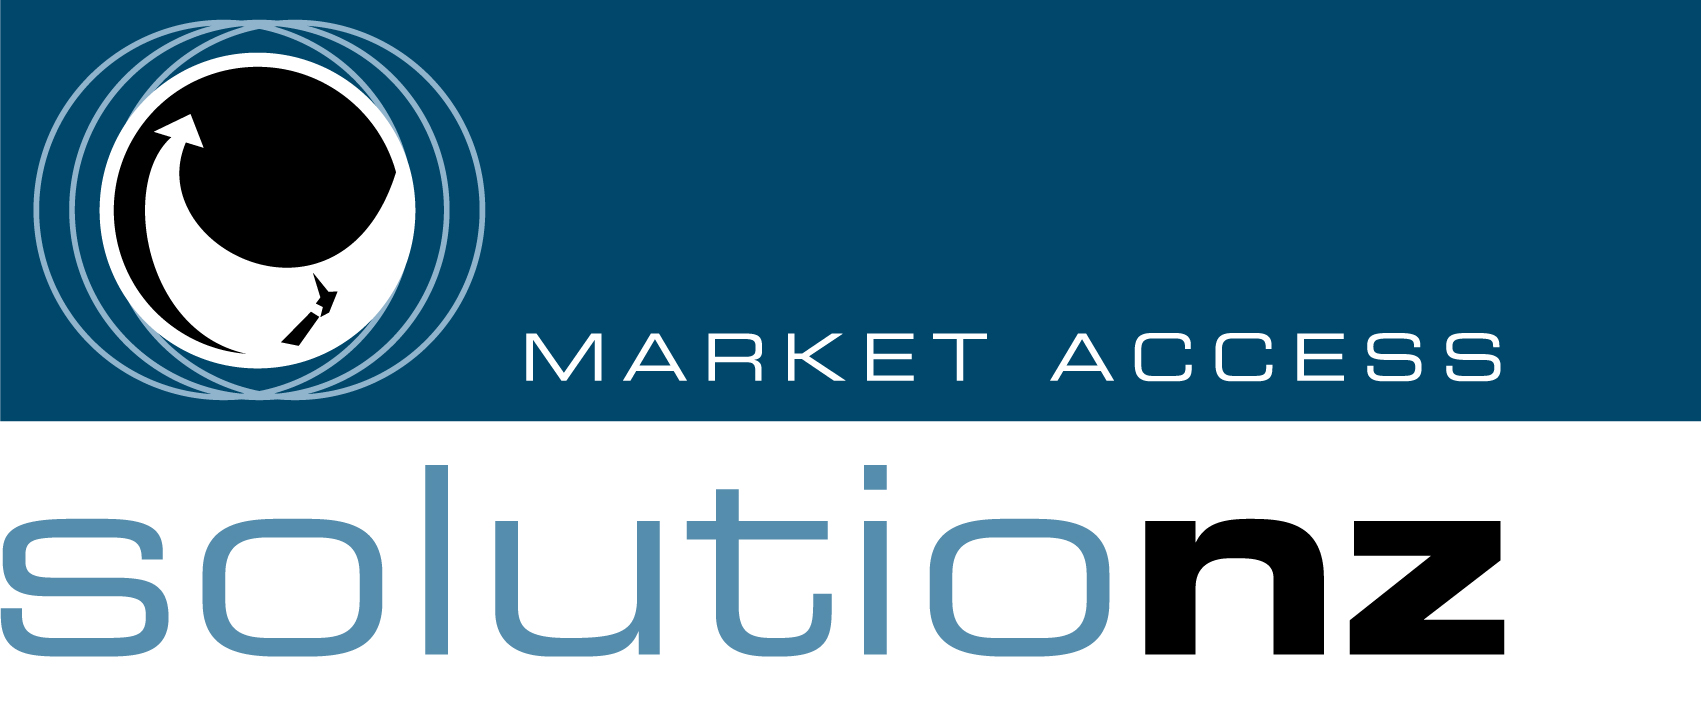 Market-Access-Solutionz-Logo